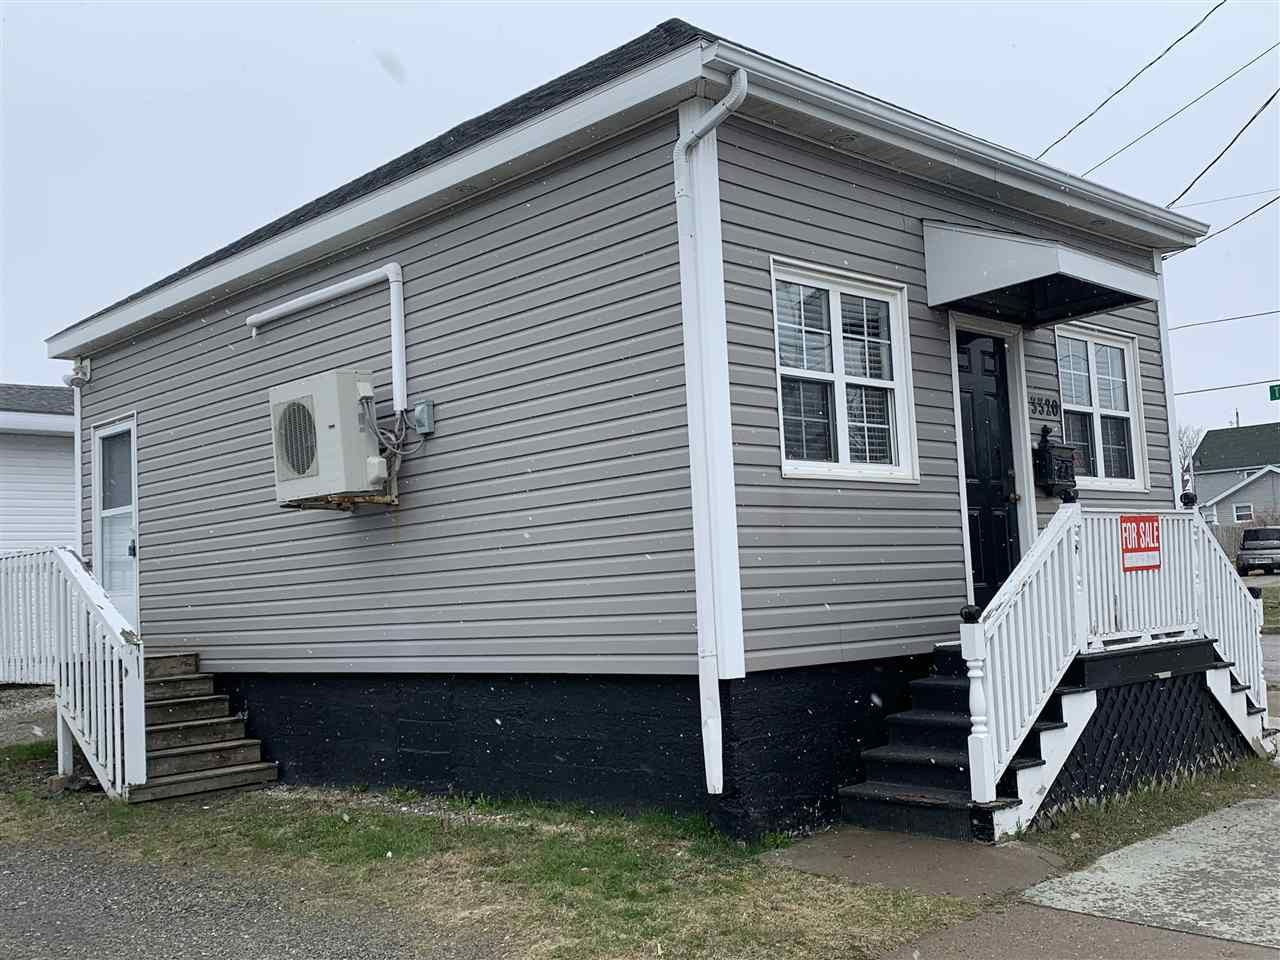 Photo 3: Photos: 3320 Plummer Avenue in New Waterford: 204-New Waterford Residential for sale (Cape Breton)  : MLS®# 202007536